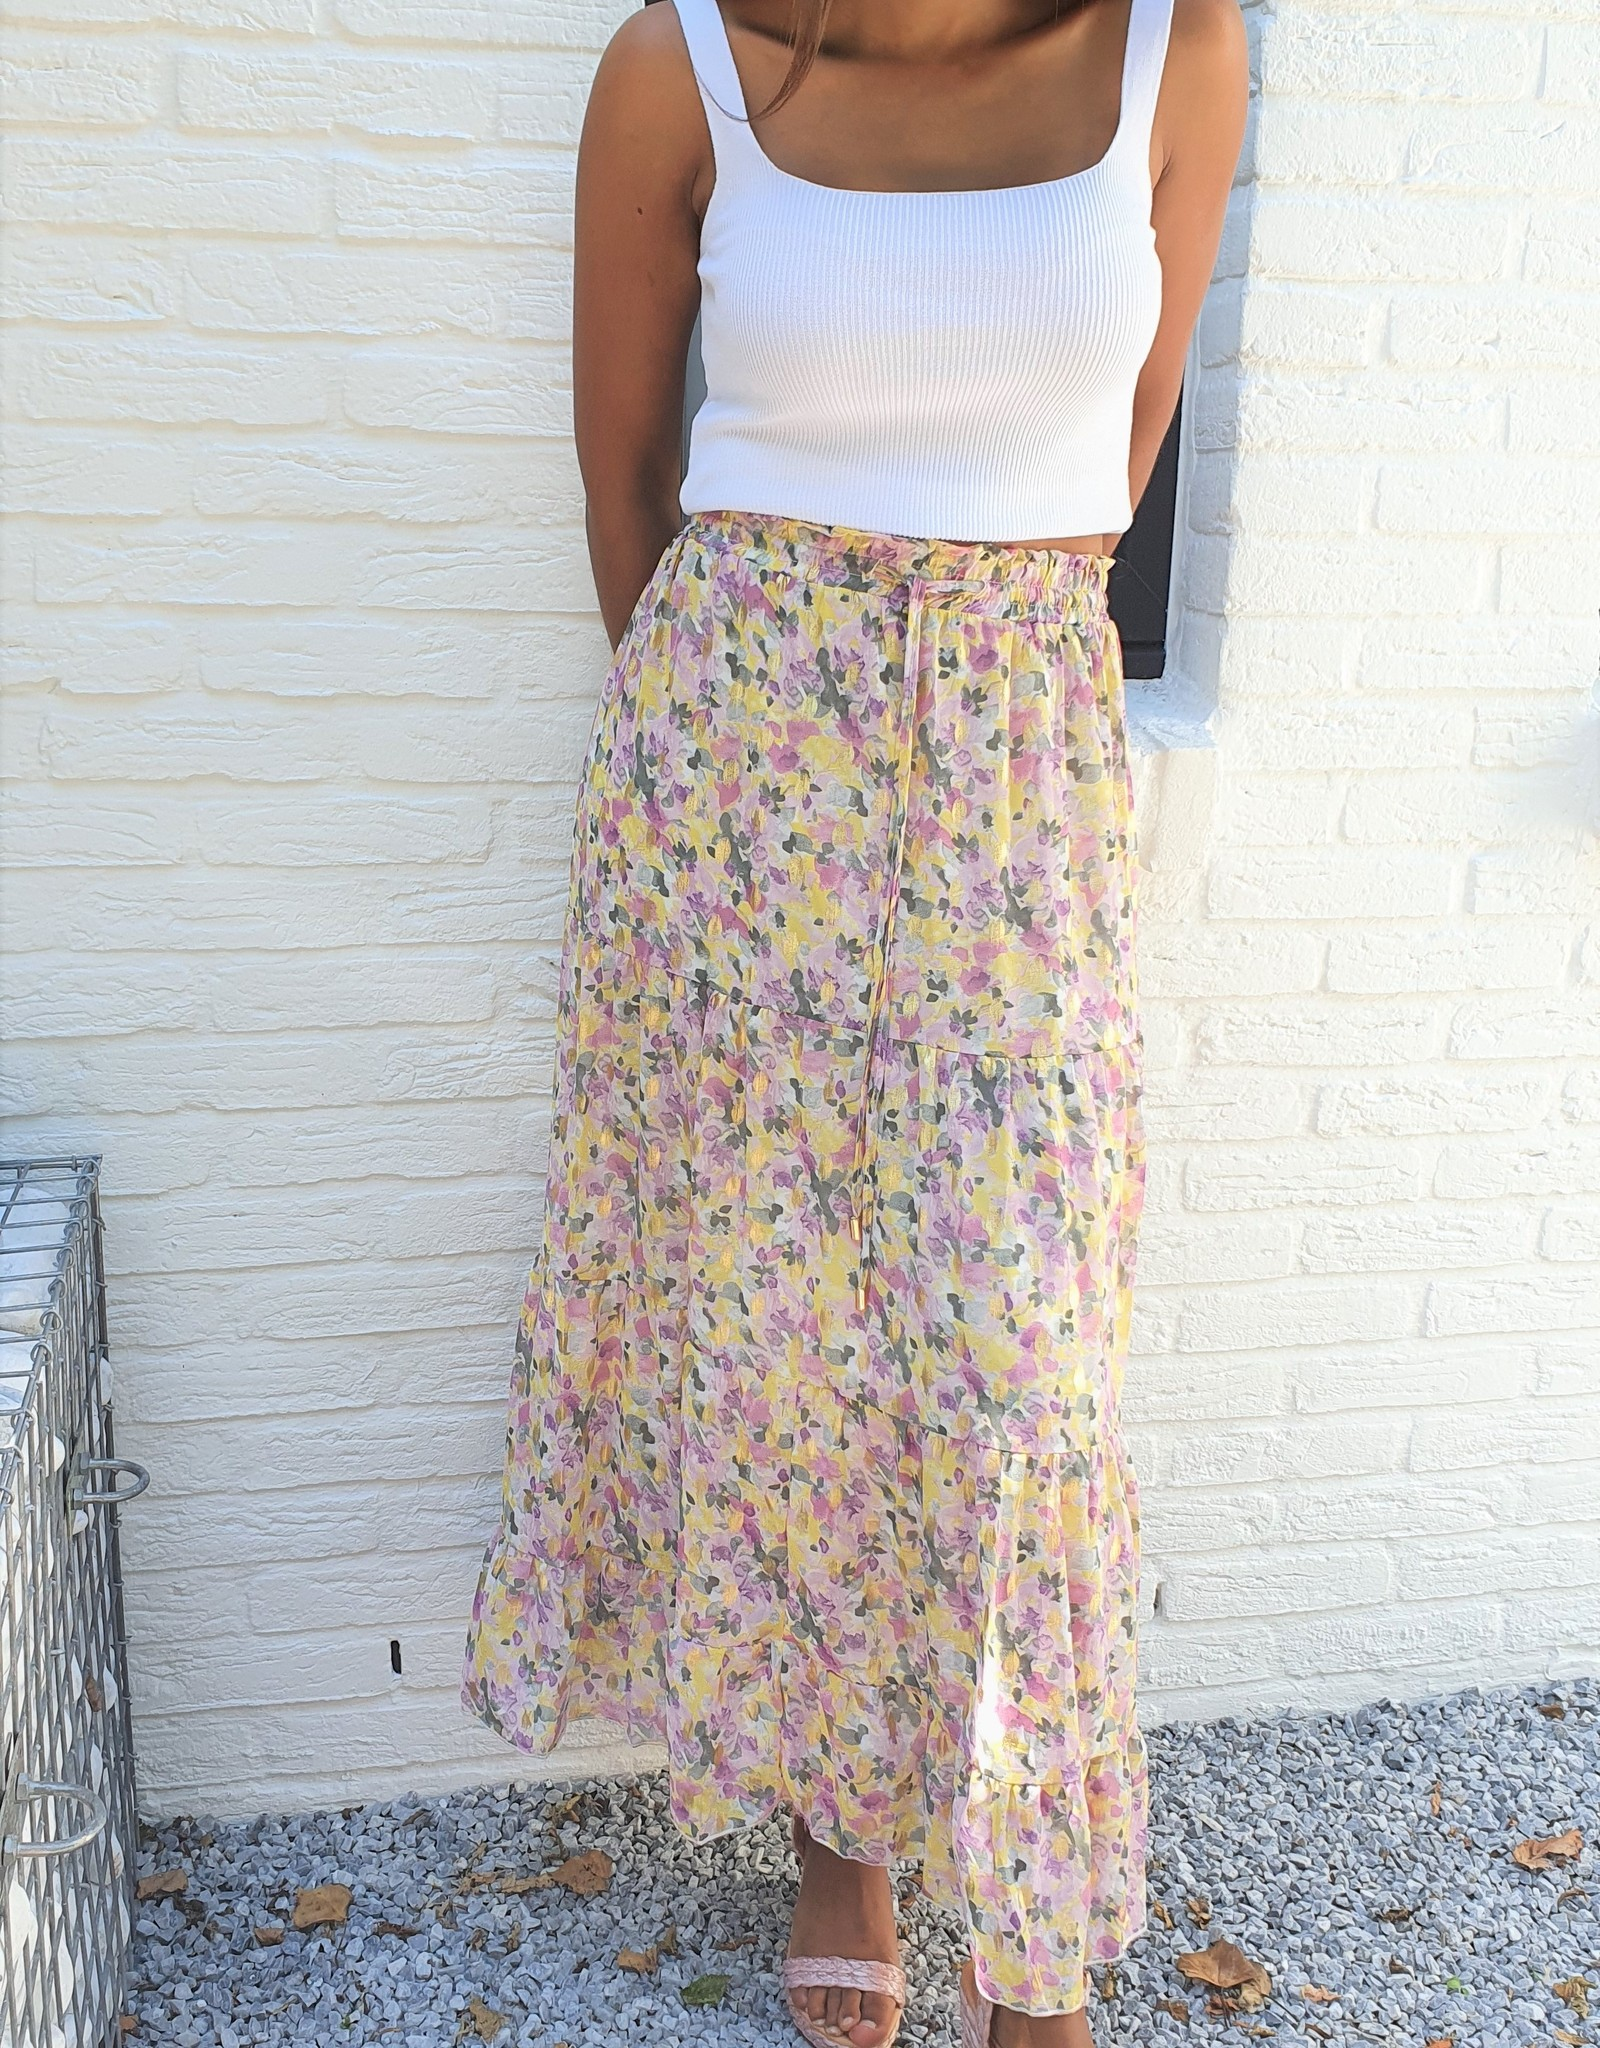 Gold, pink and green skirt